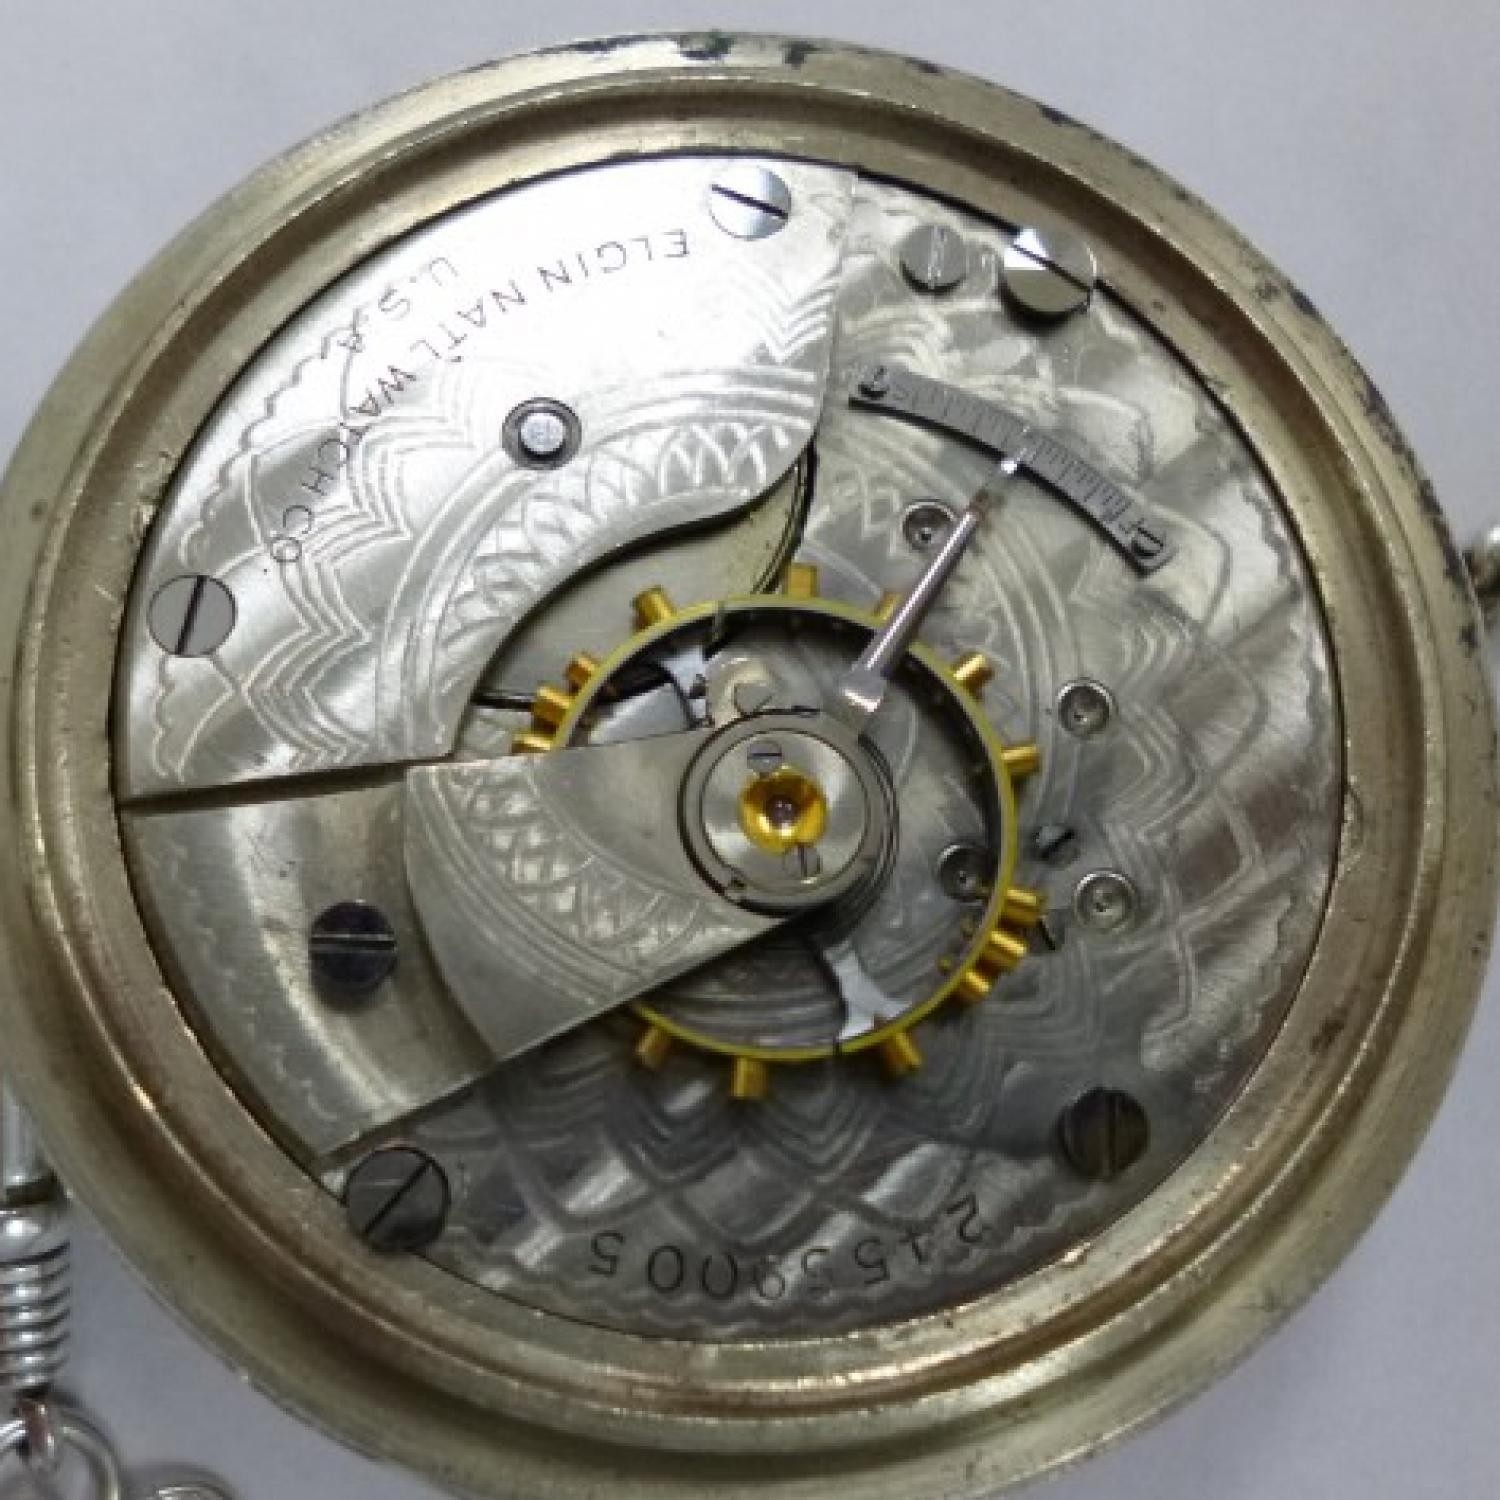 Image of Elgin 288 #24559005 Movement